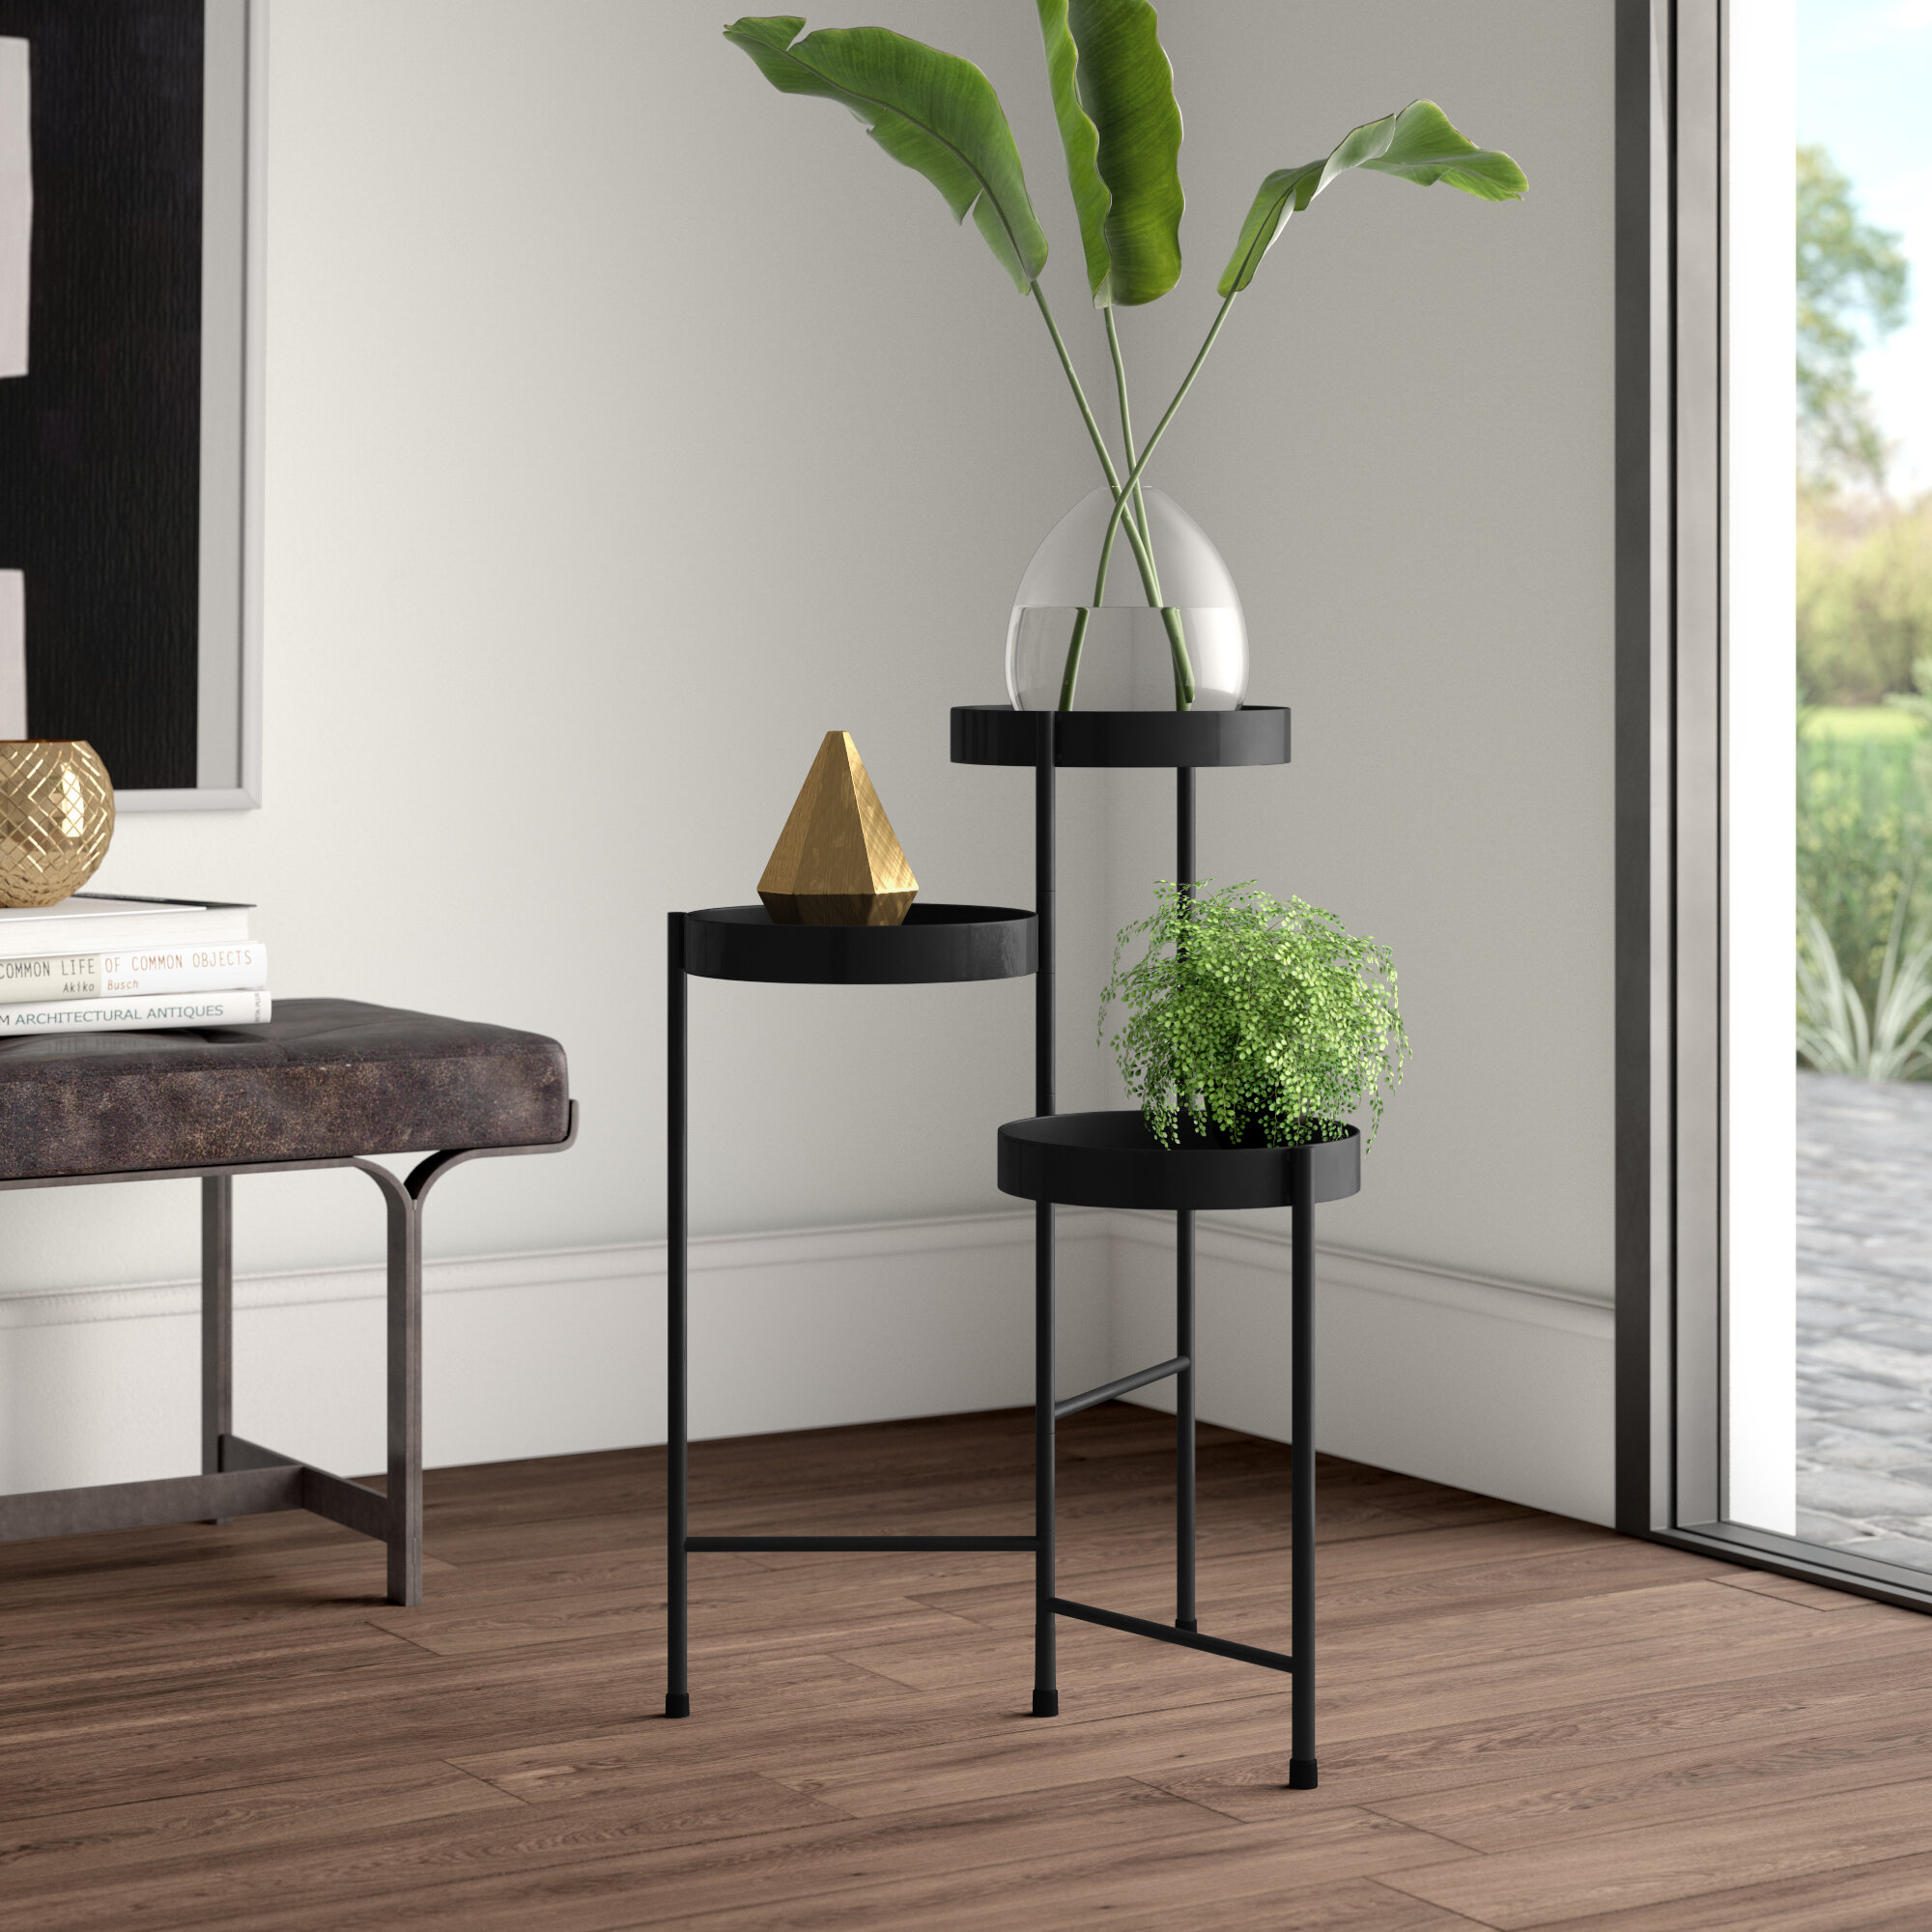 Metal Tiered Plant Stands Tables You Ll Love In 2021 Wayfair